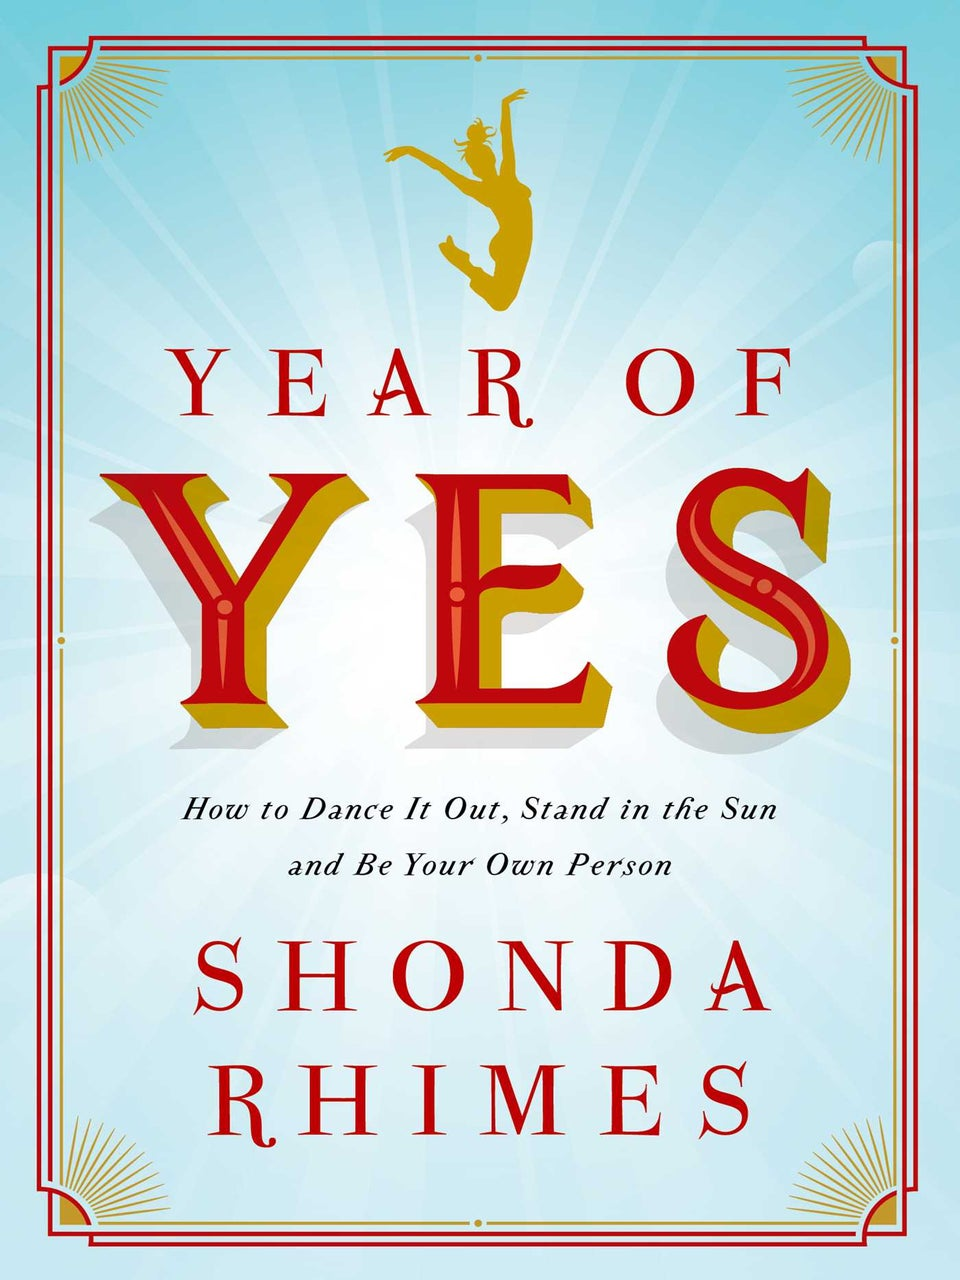 Shonda's Rules: 5 Things Shonda Rhimes Discovered by Saying 'Yes'